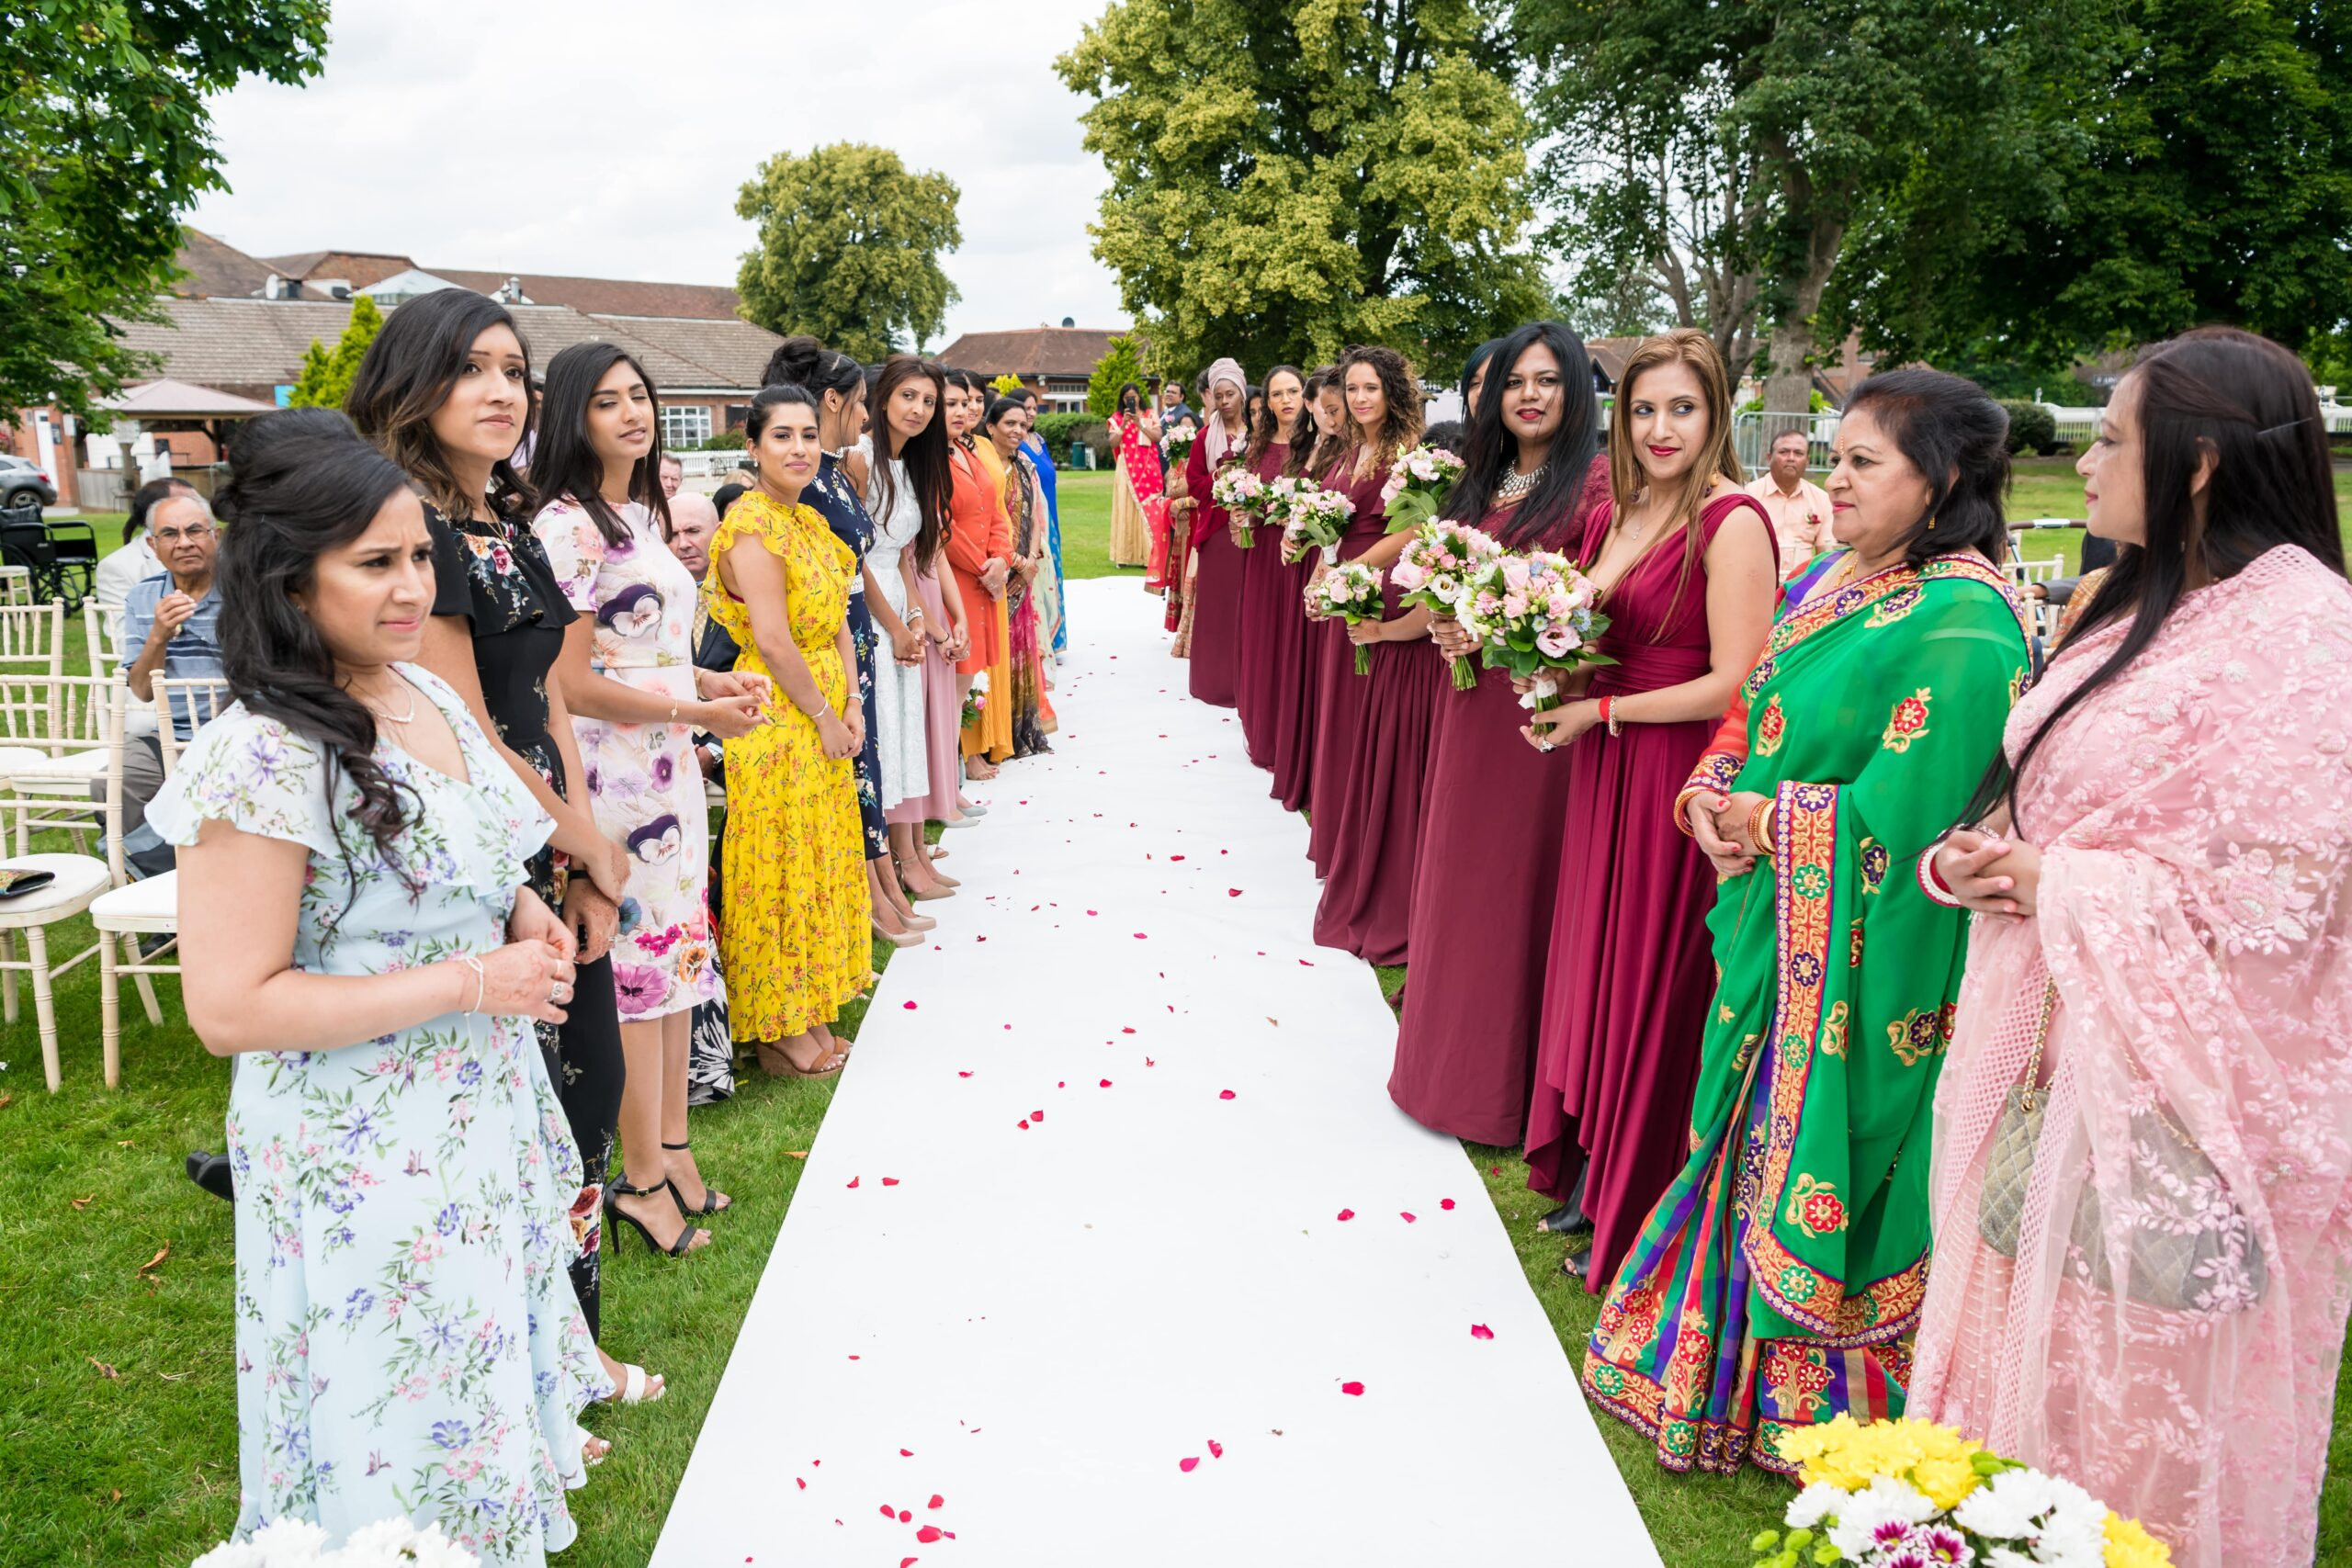 The Rose Ceremony to involve wedding guests